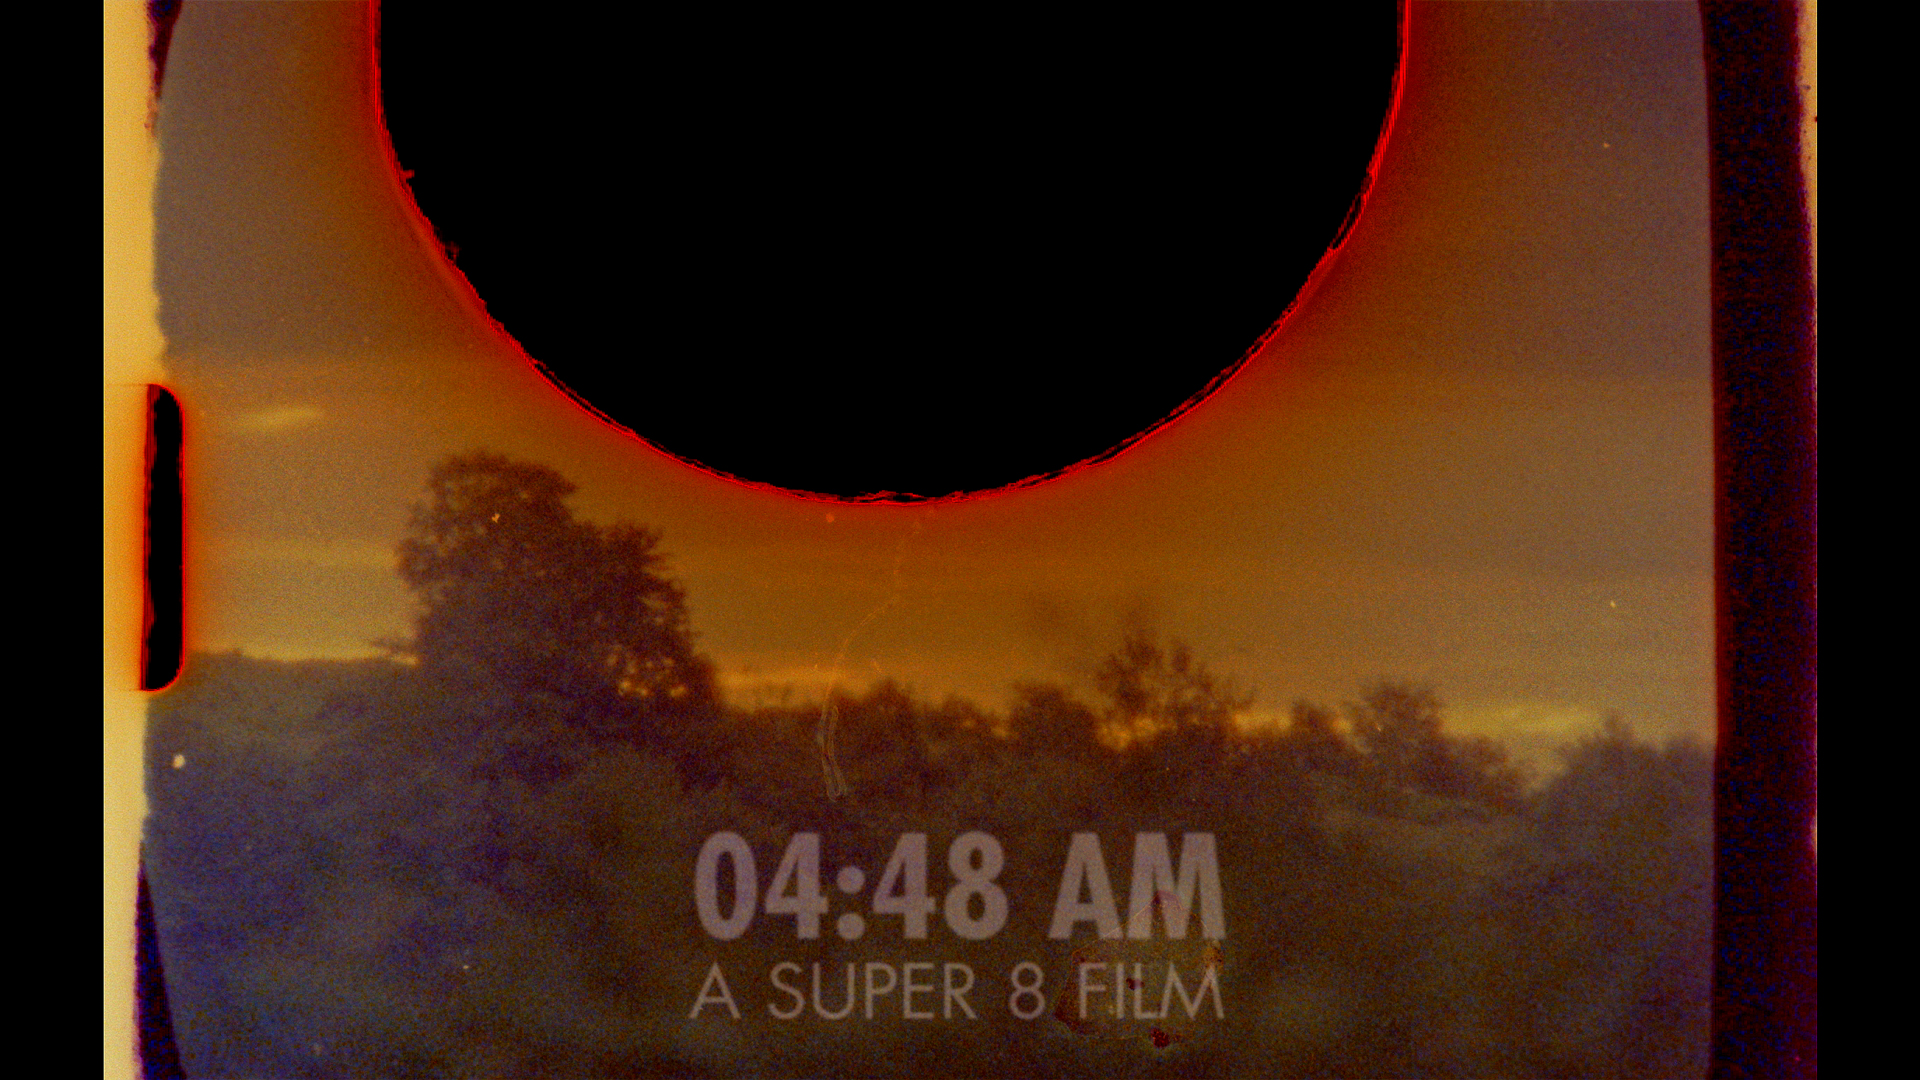 4:48 am | Super 8 Film | 2016